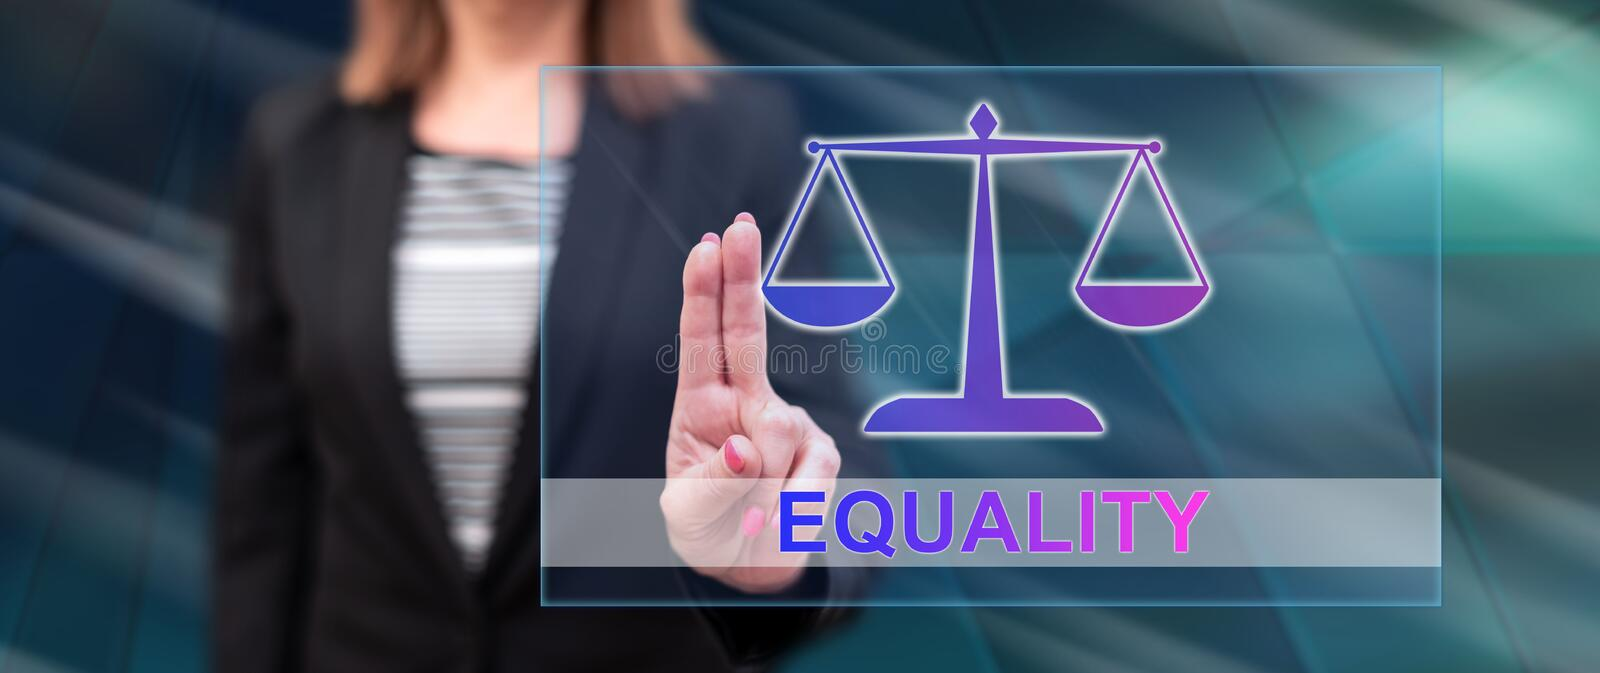 Woman touching an equality concept royalty free stock photo